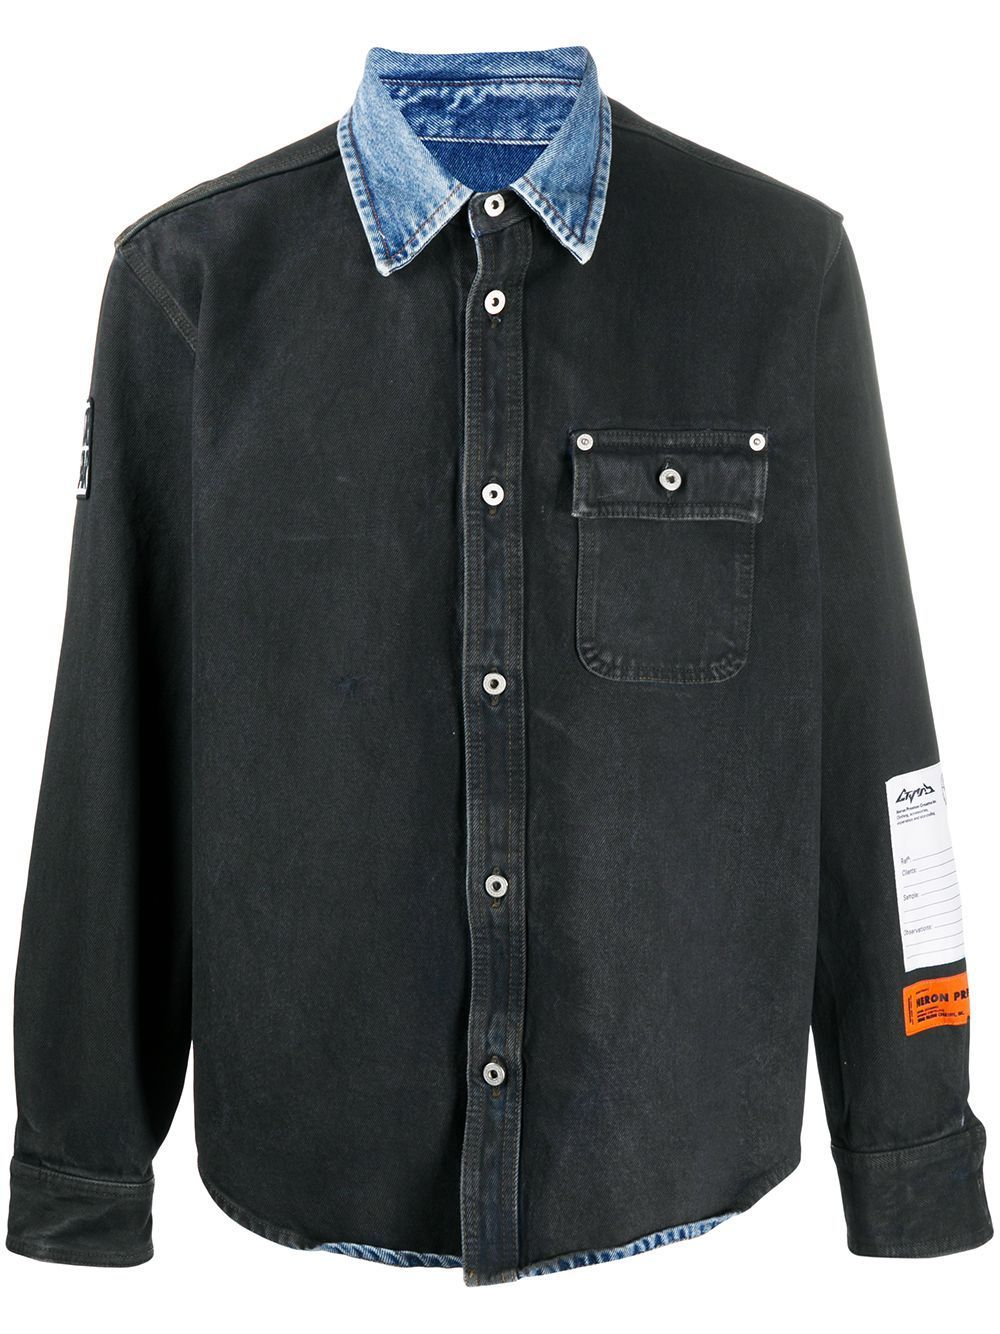 HERON PRESTON Spray Denim Shirt Black - Maison De Fashion